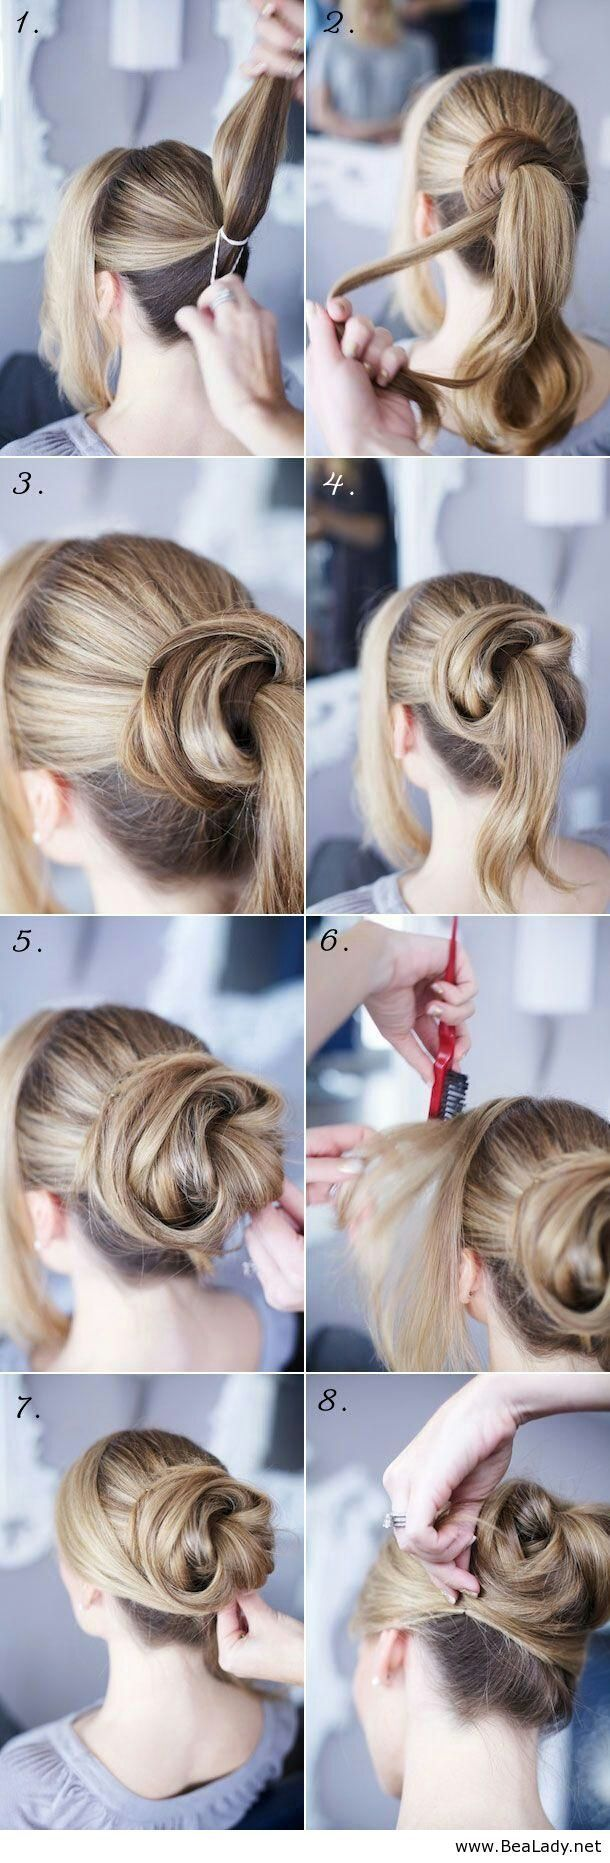 Cute hairstyle perfect for a wedding or cocktail party will it